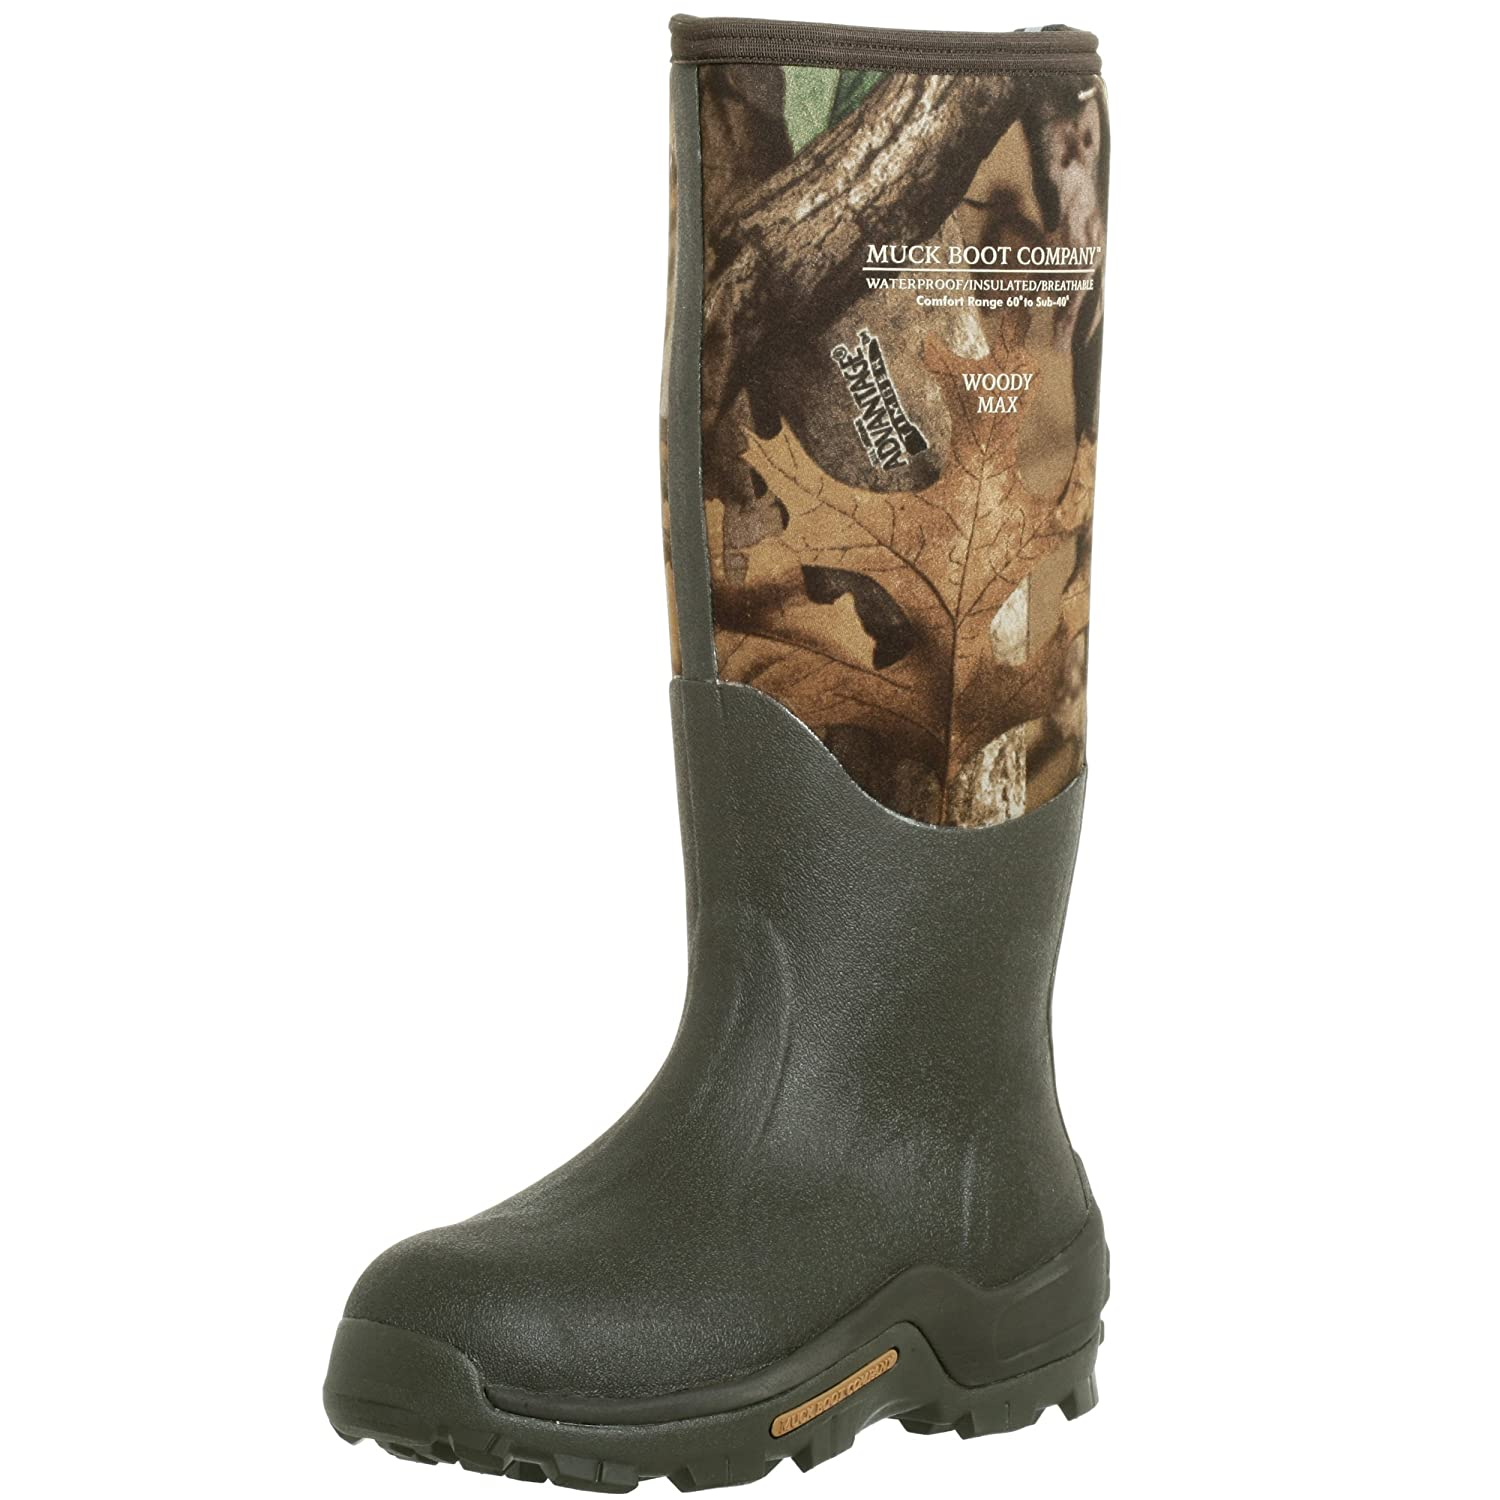 Amazon.com | The Original MuckBoots Unisex Woody Max Boot | Hunting